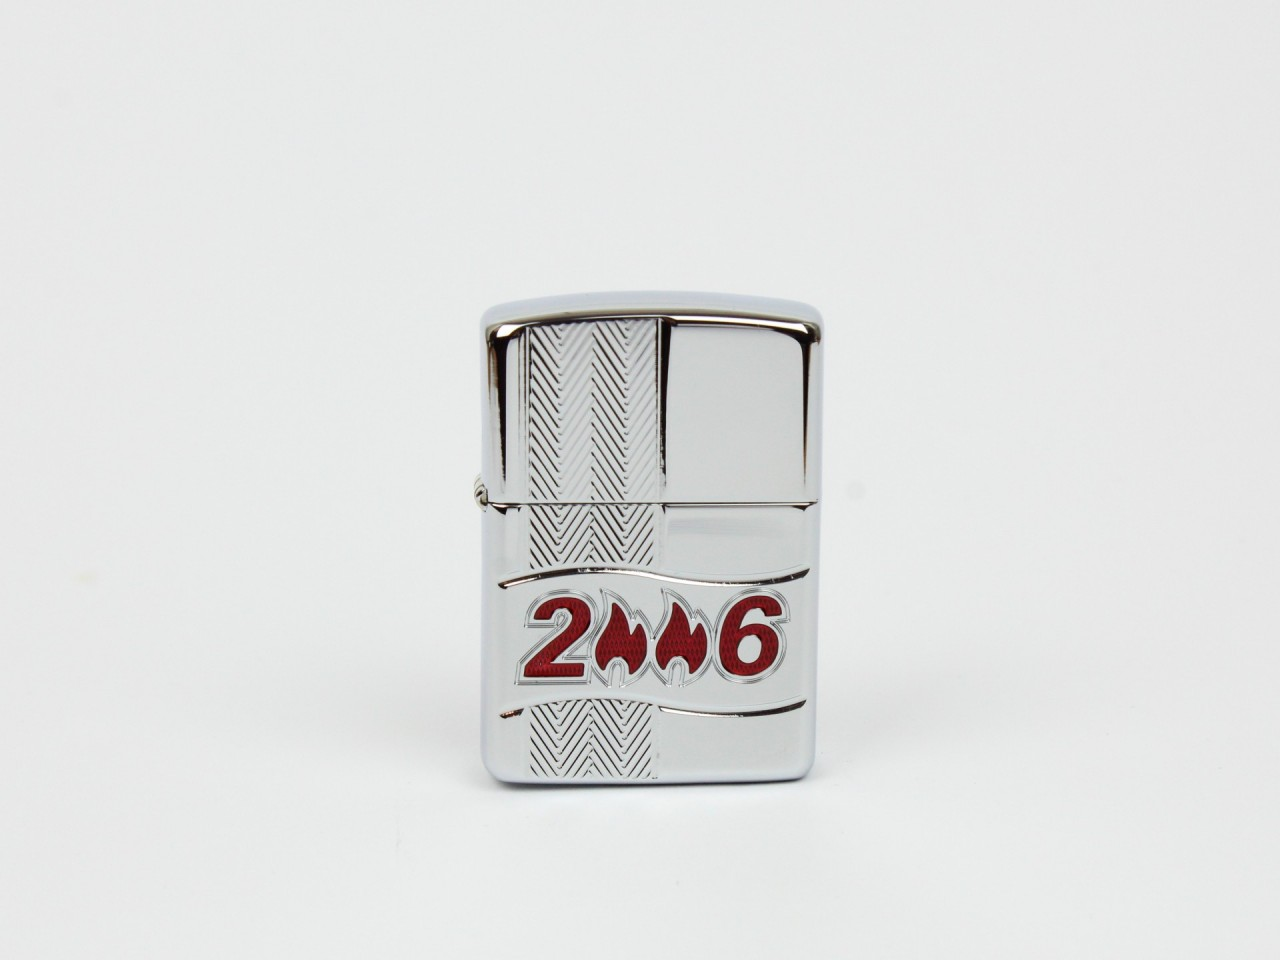 Zippo Jahrgangsmodell 2006